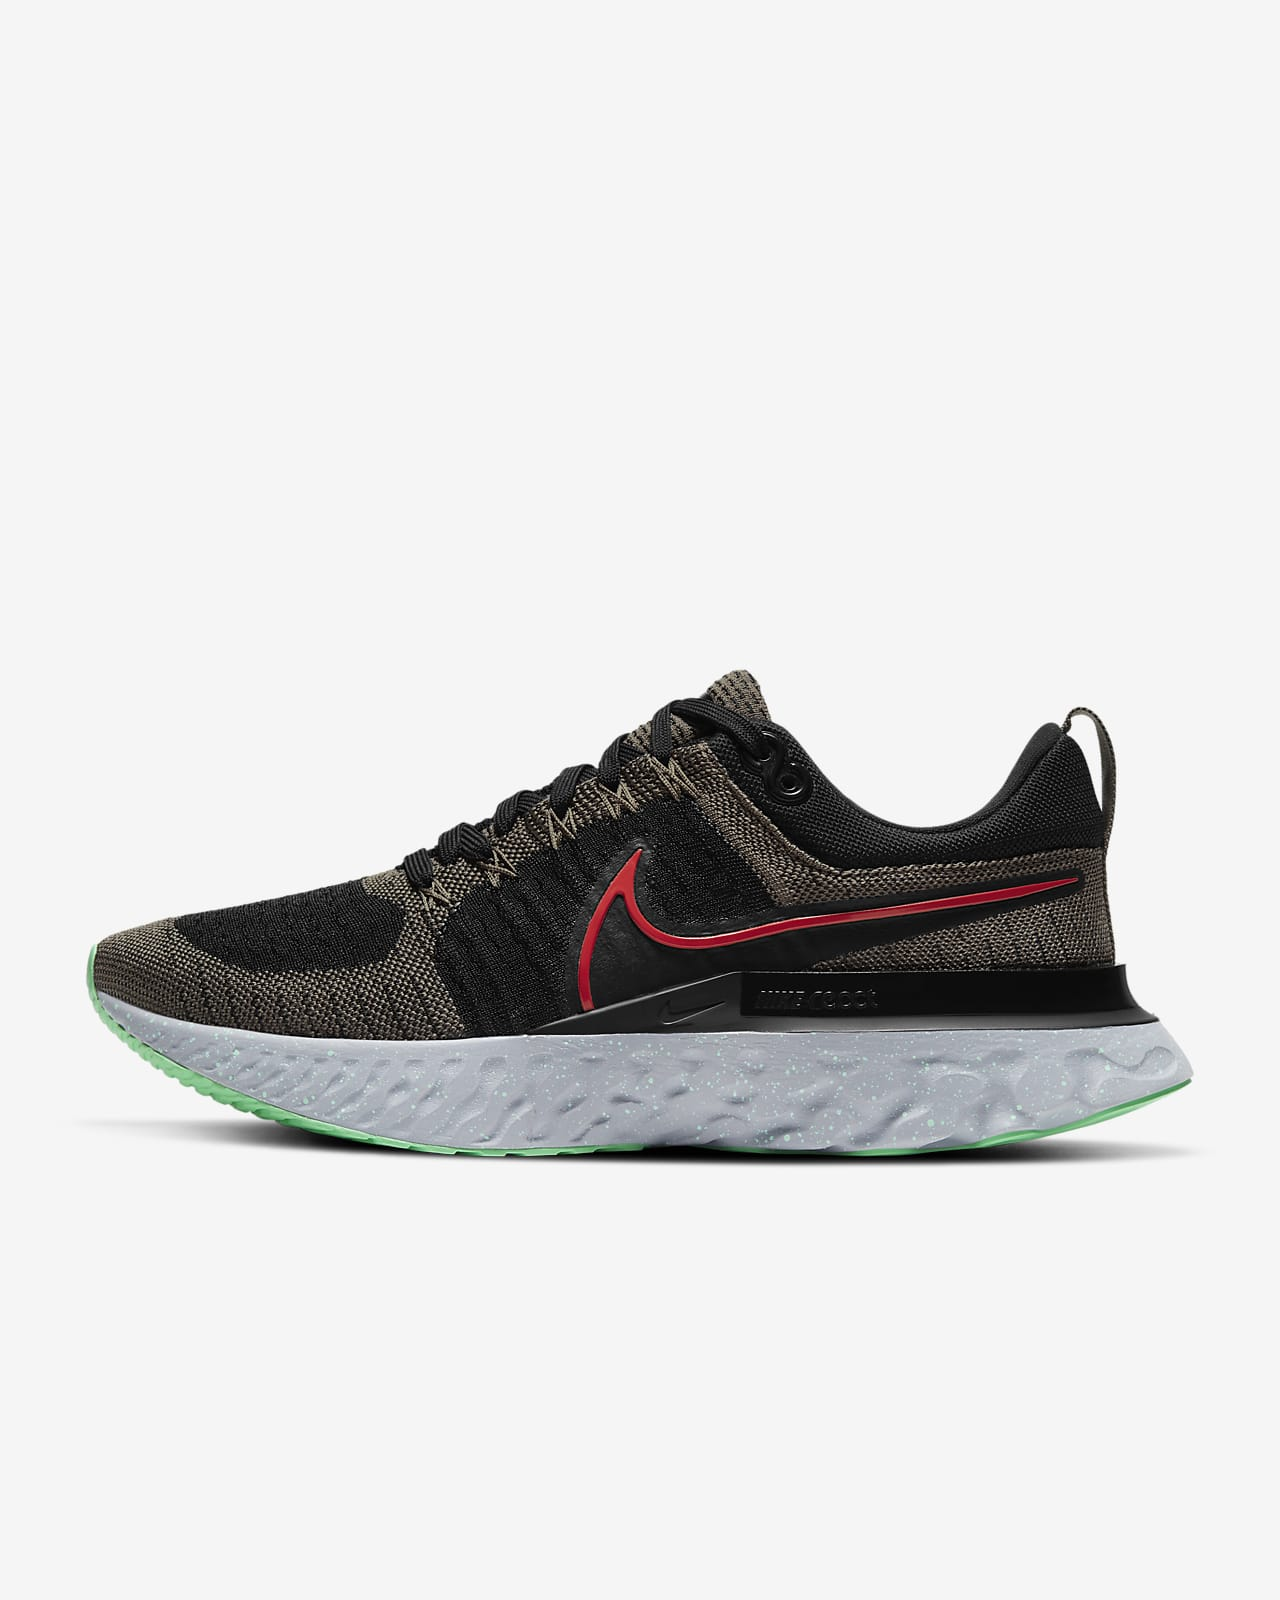 Nike React Infinity Run Flyknit 2 男款跑鞋